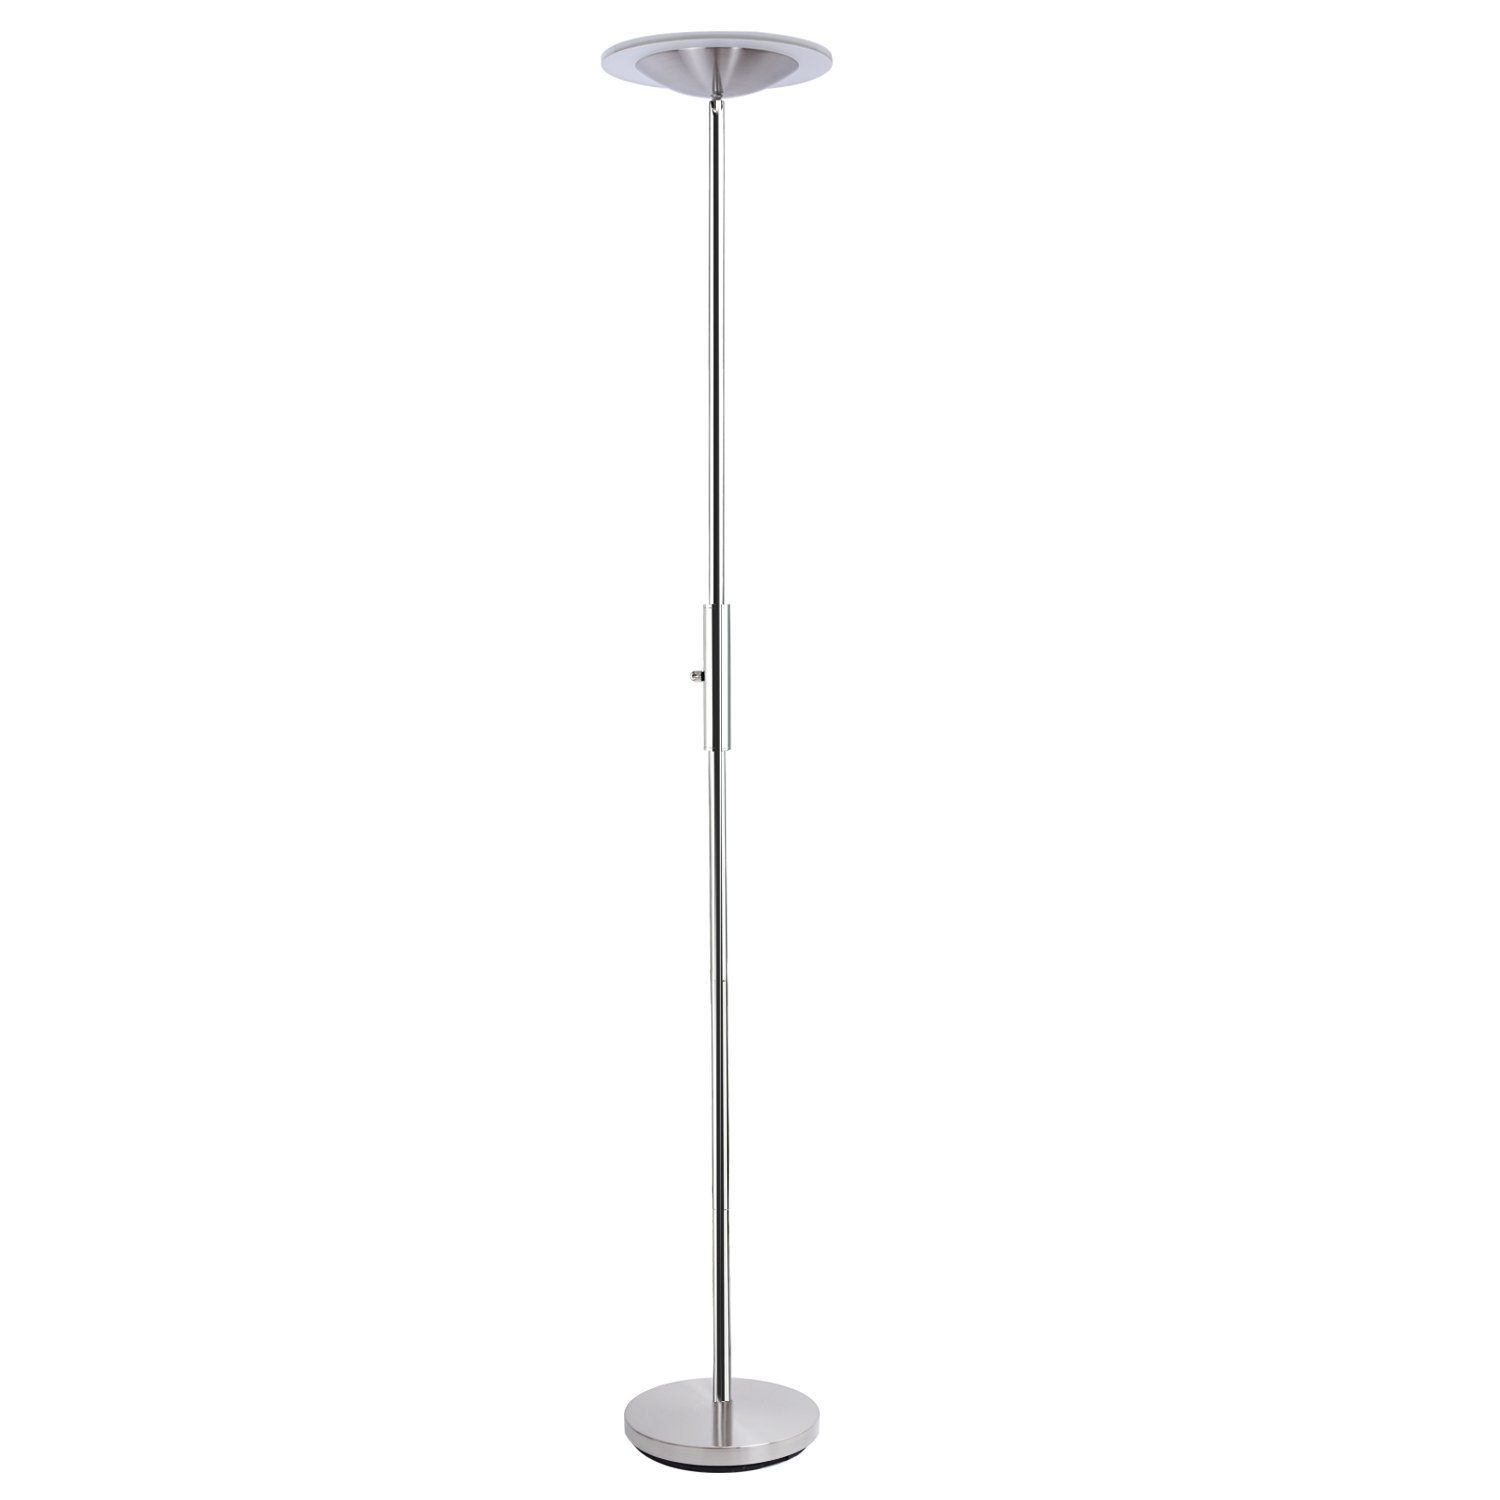 SUNLLIPE LED Torchiere Floor Lamp Acrylic Shade Compatible with Wall Switch 18W 90° Top Adjustable Dimmable Stand up Lamp for Bedroom, Living Room, Office (Satin Nickel)